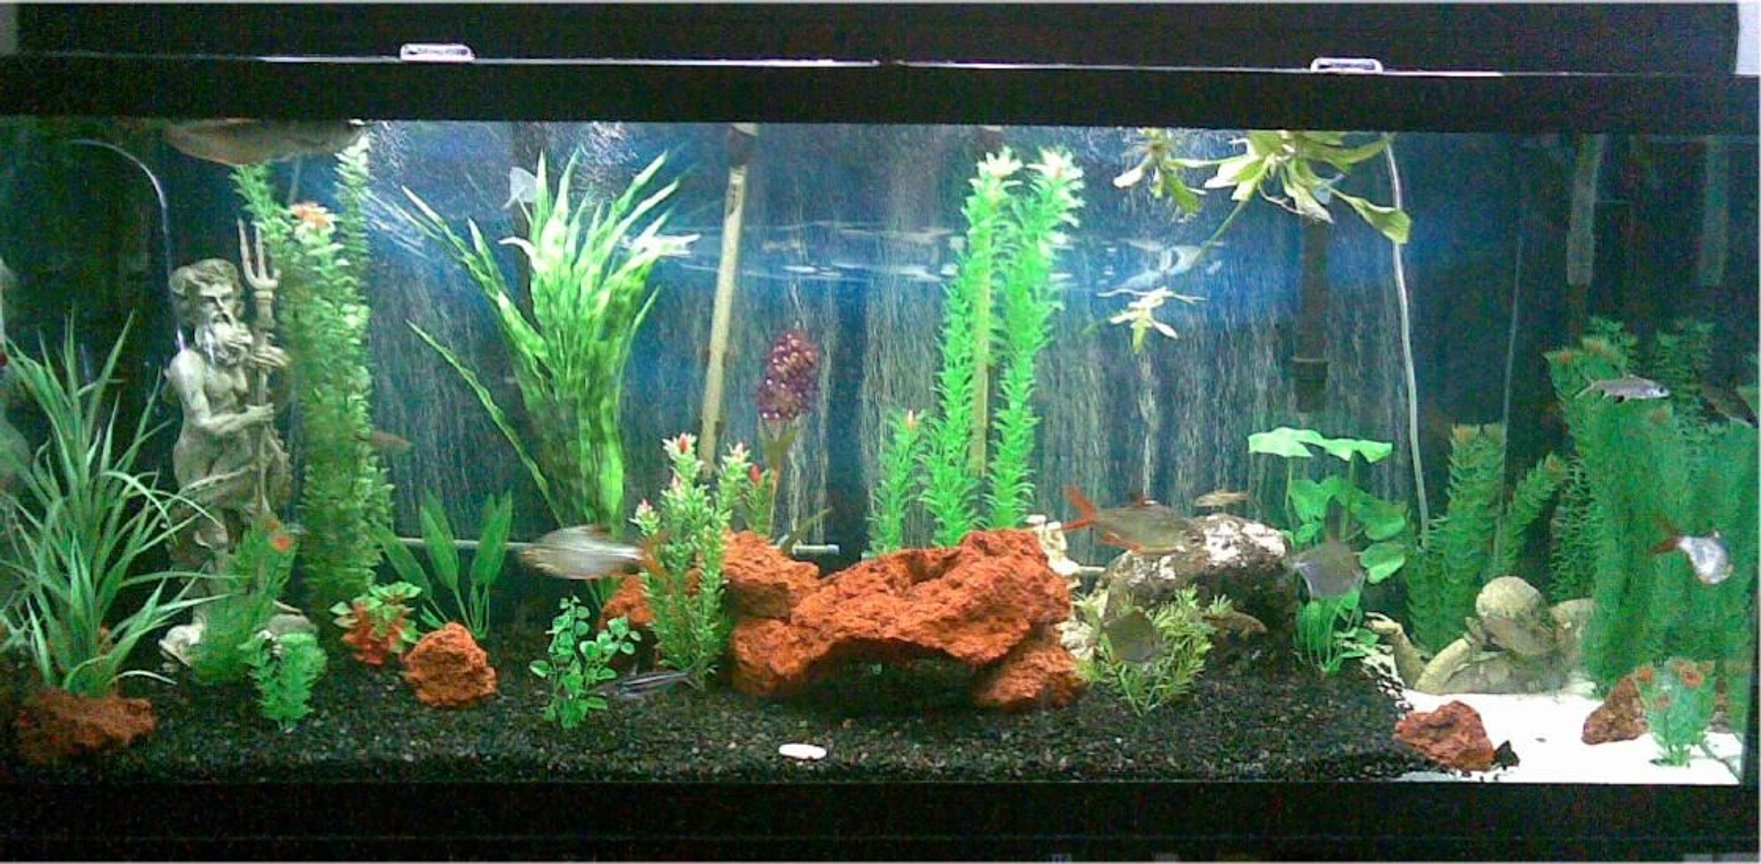 125 gallons freshwater fish tank (mostly fish and non-living decorations) - 125g tank